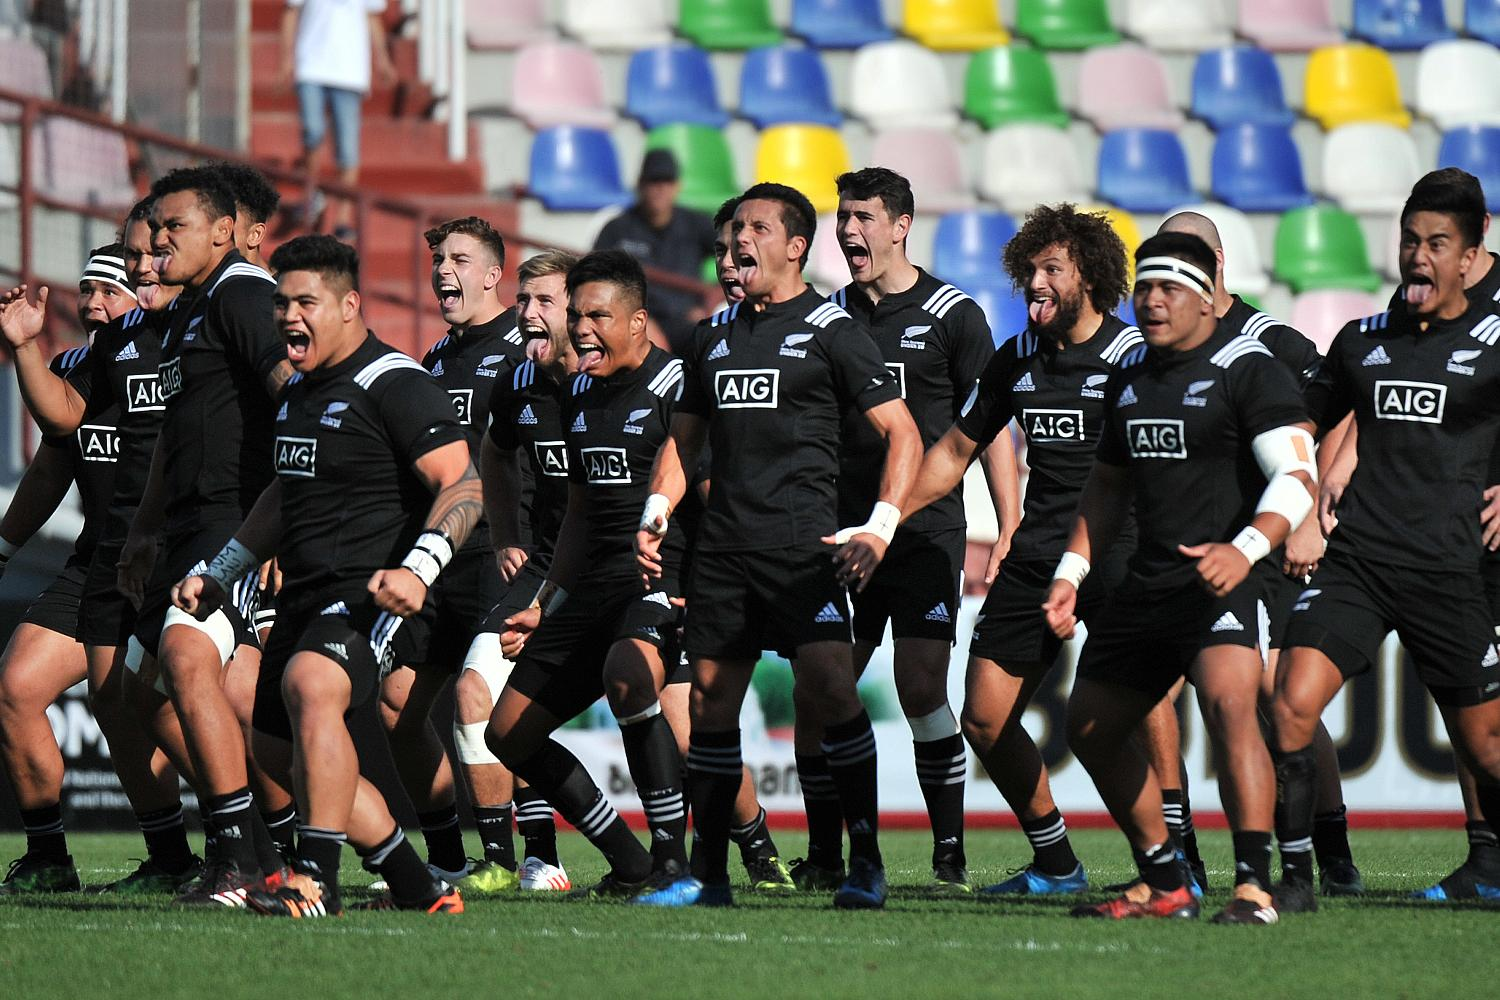 World Rugby U20 Championship 2017: Final - England v New Zealand